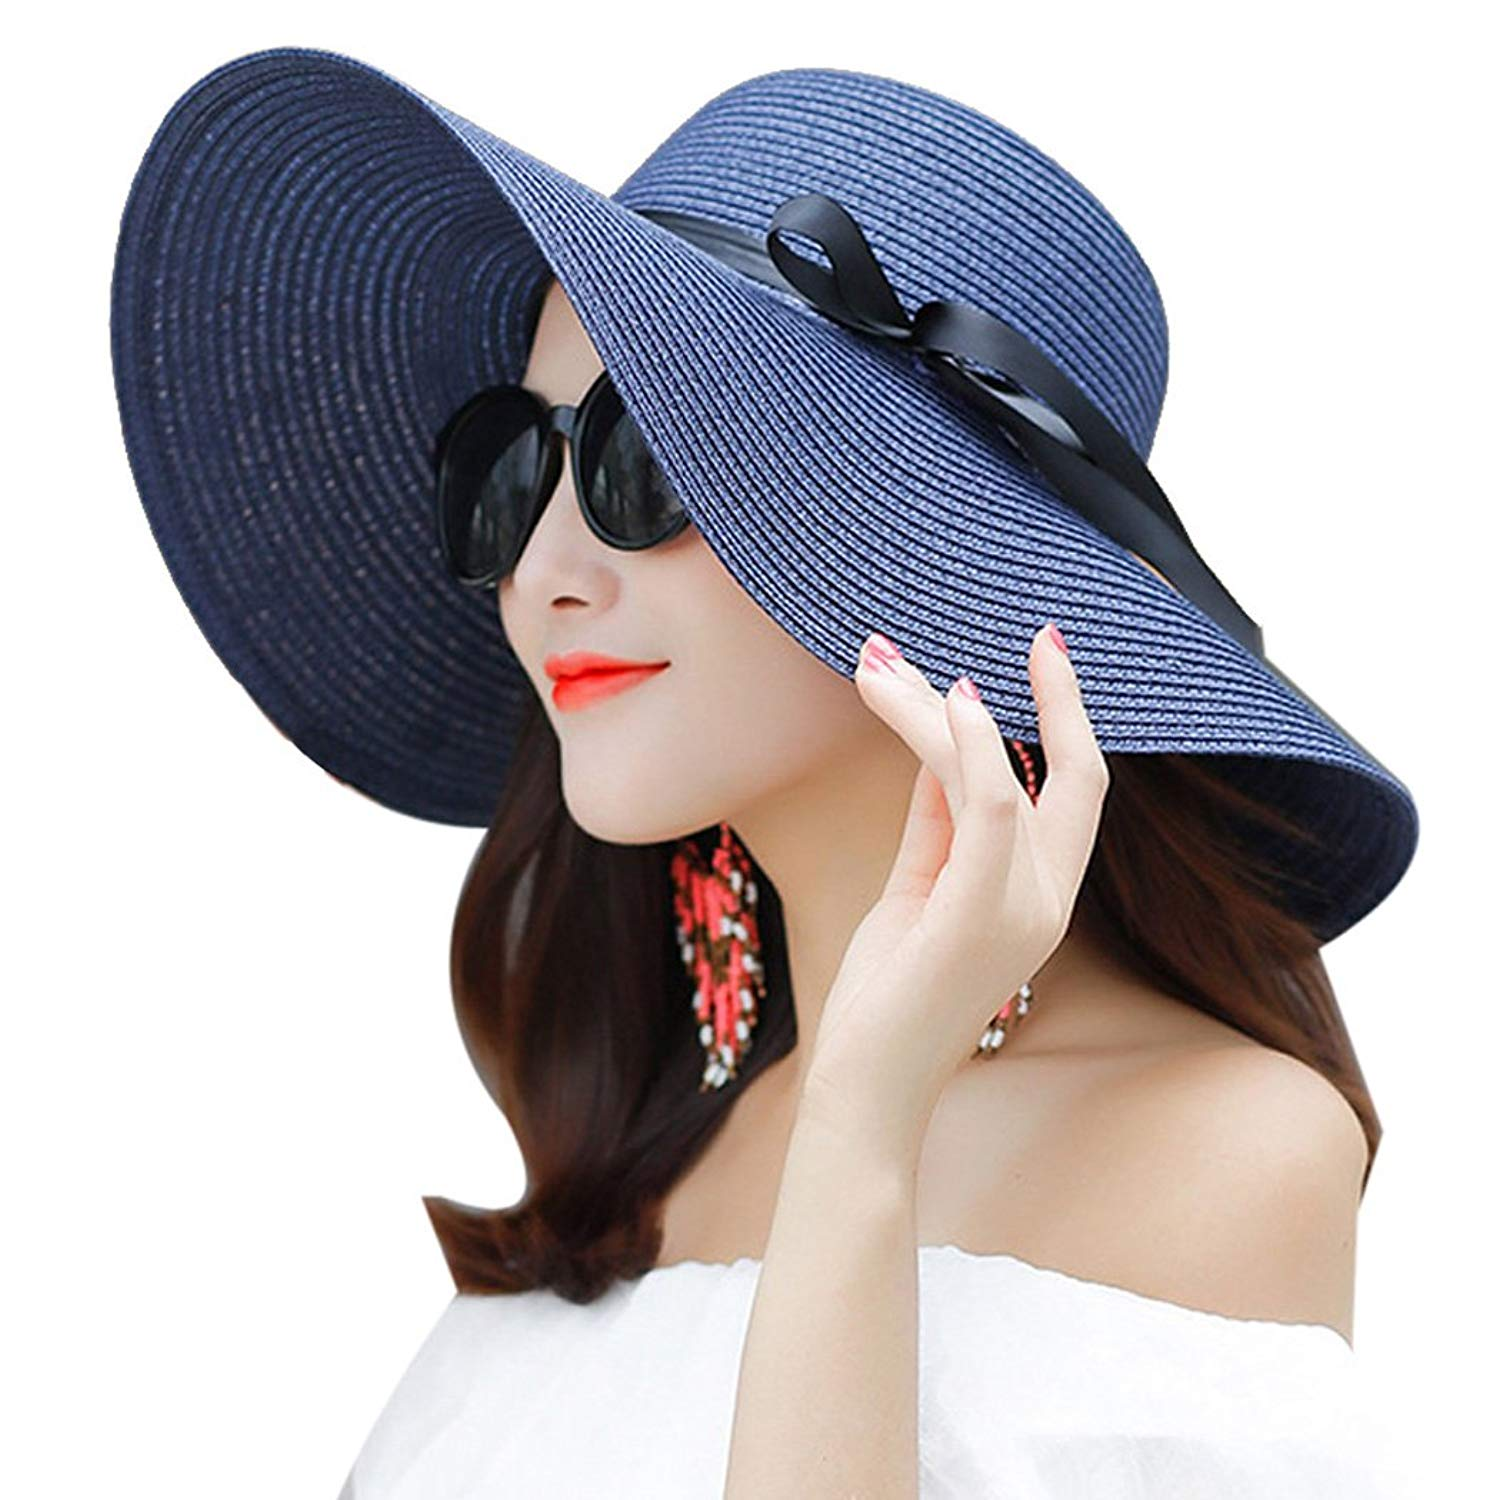 57eda705f4e Get Quotations · Aniwon Womens Beach Hat Foldable UV Protection Floppy  Beach Cap Beach Sun Hat Summer Beach Cap